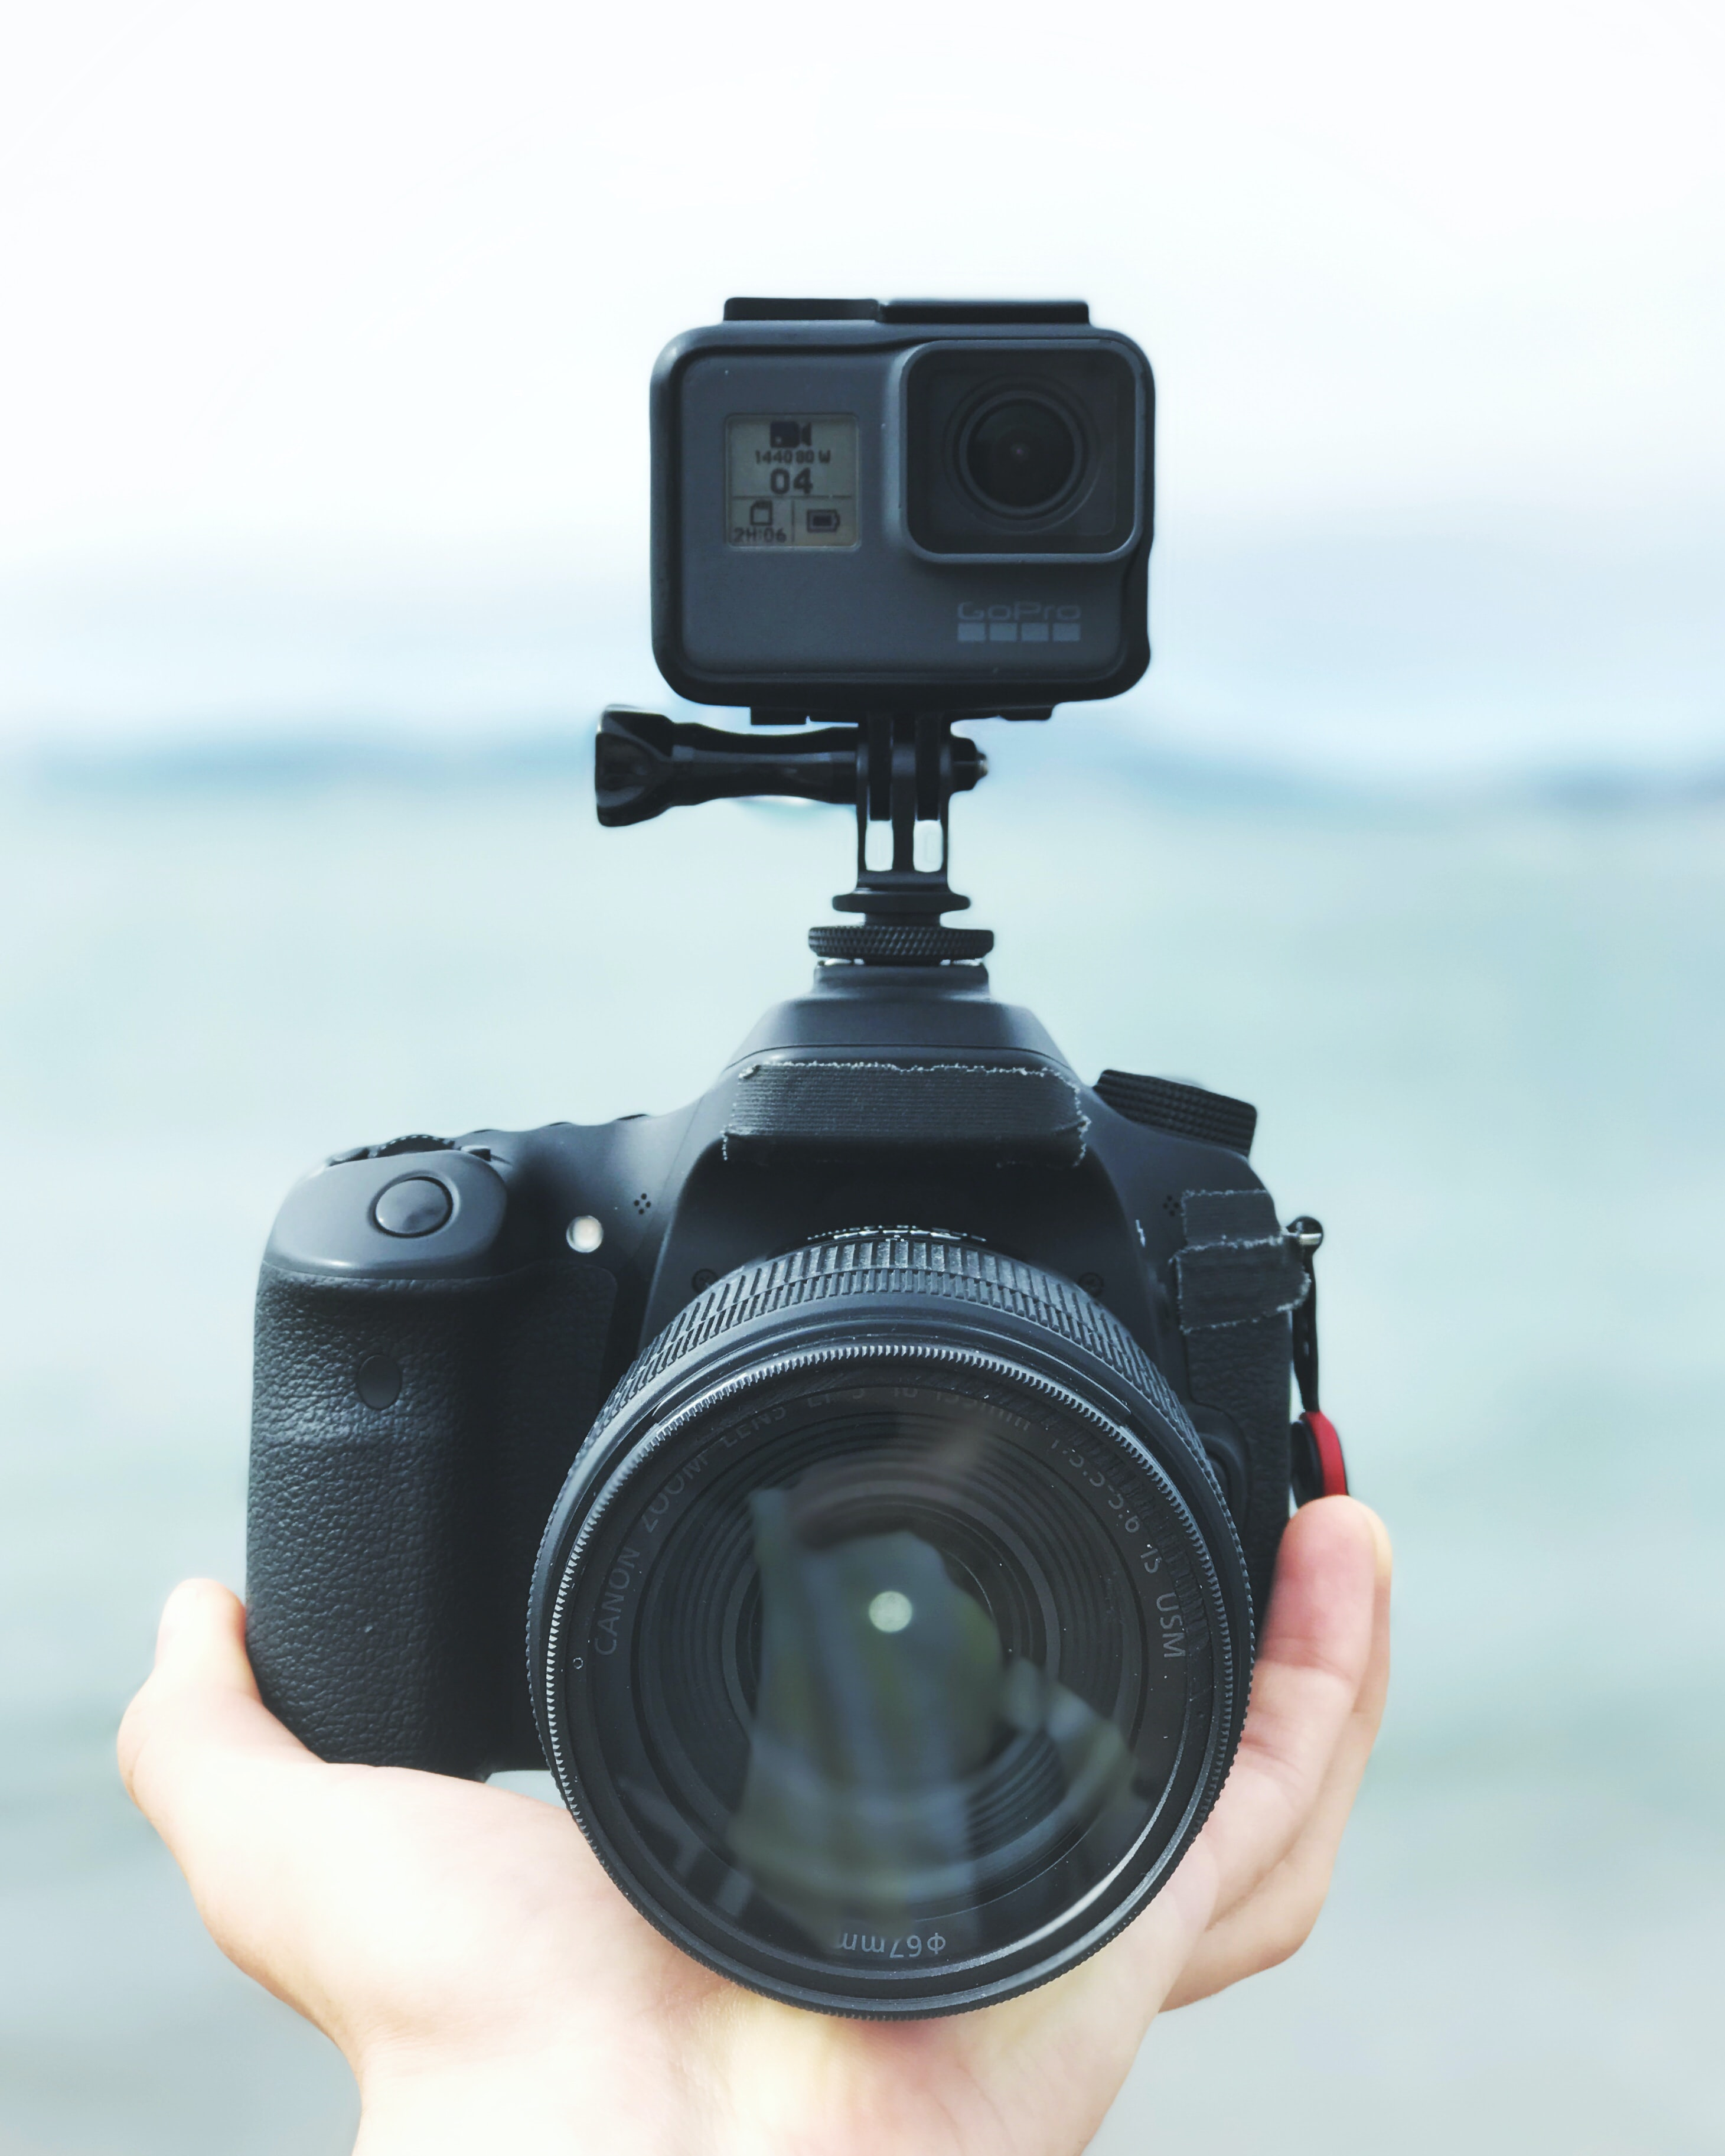 Macro of a person holding a black DSLR camera with a GoPro mounted on beside a lake or sea setting